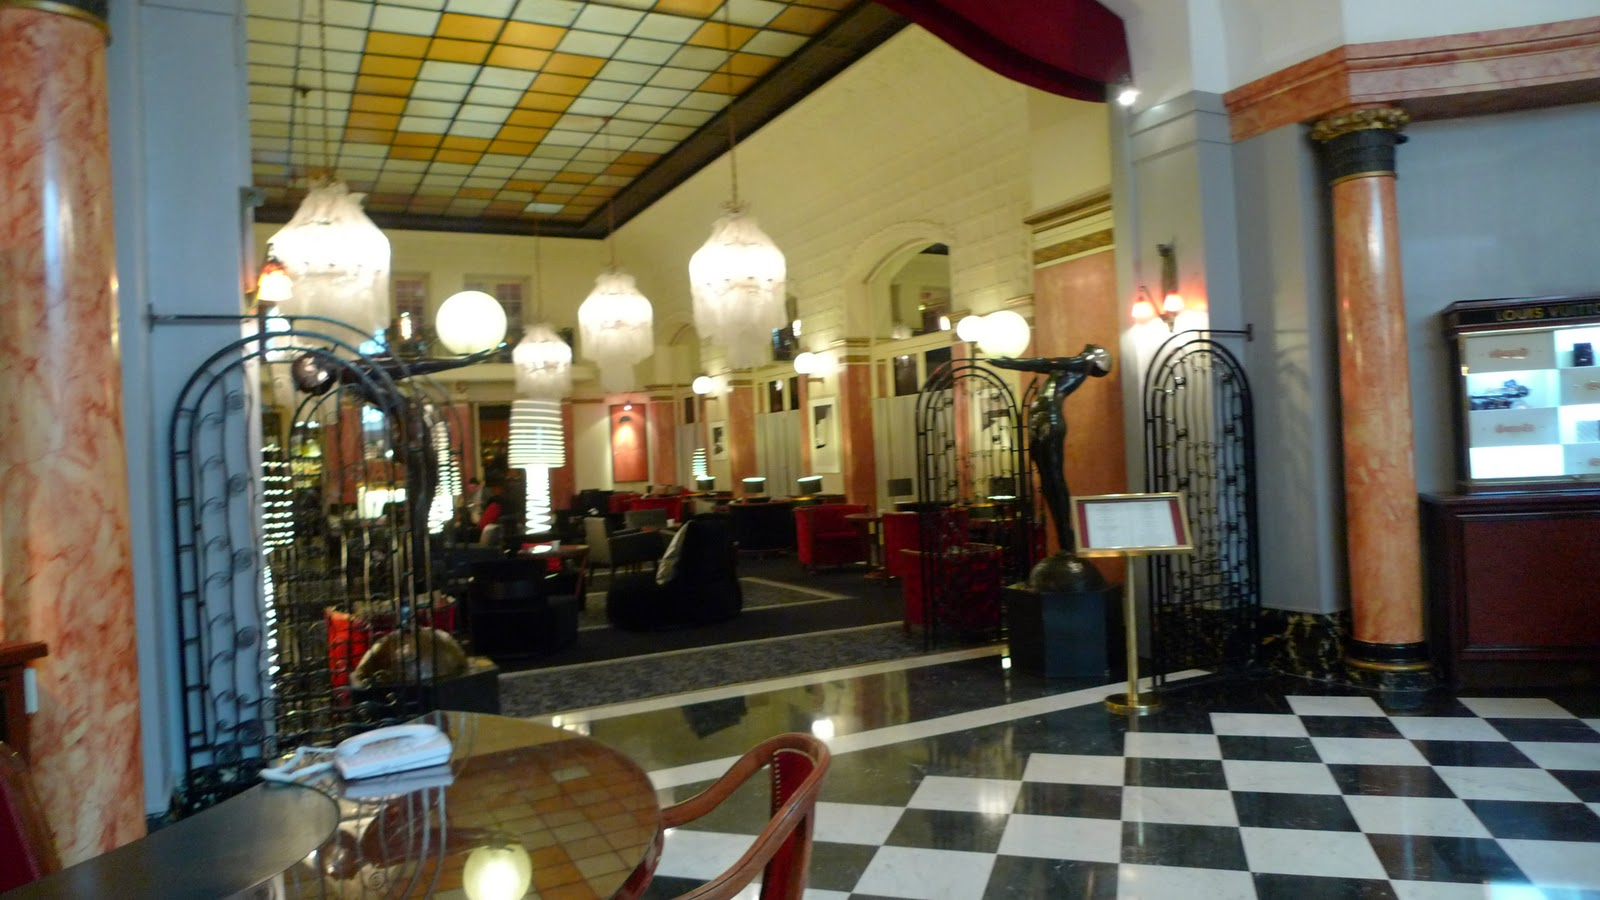 Ms ellaneous in the heart of paris the herm s boutique - Boutique art deco paris ...